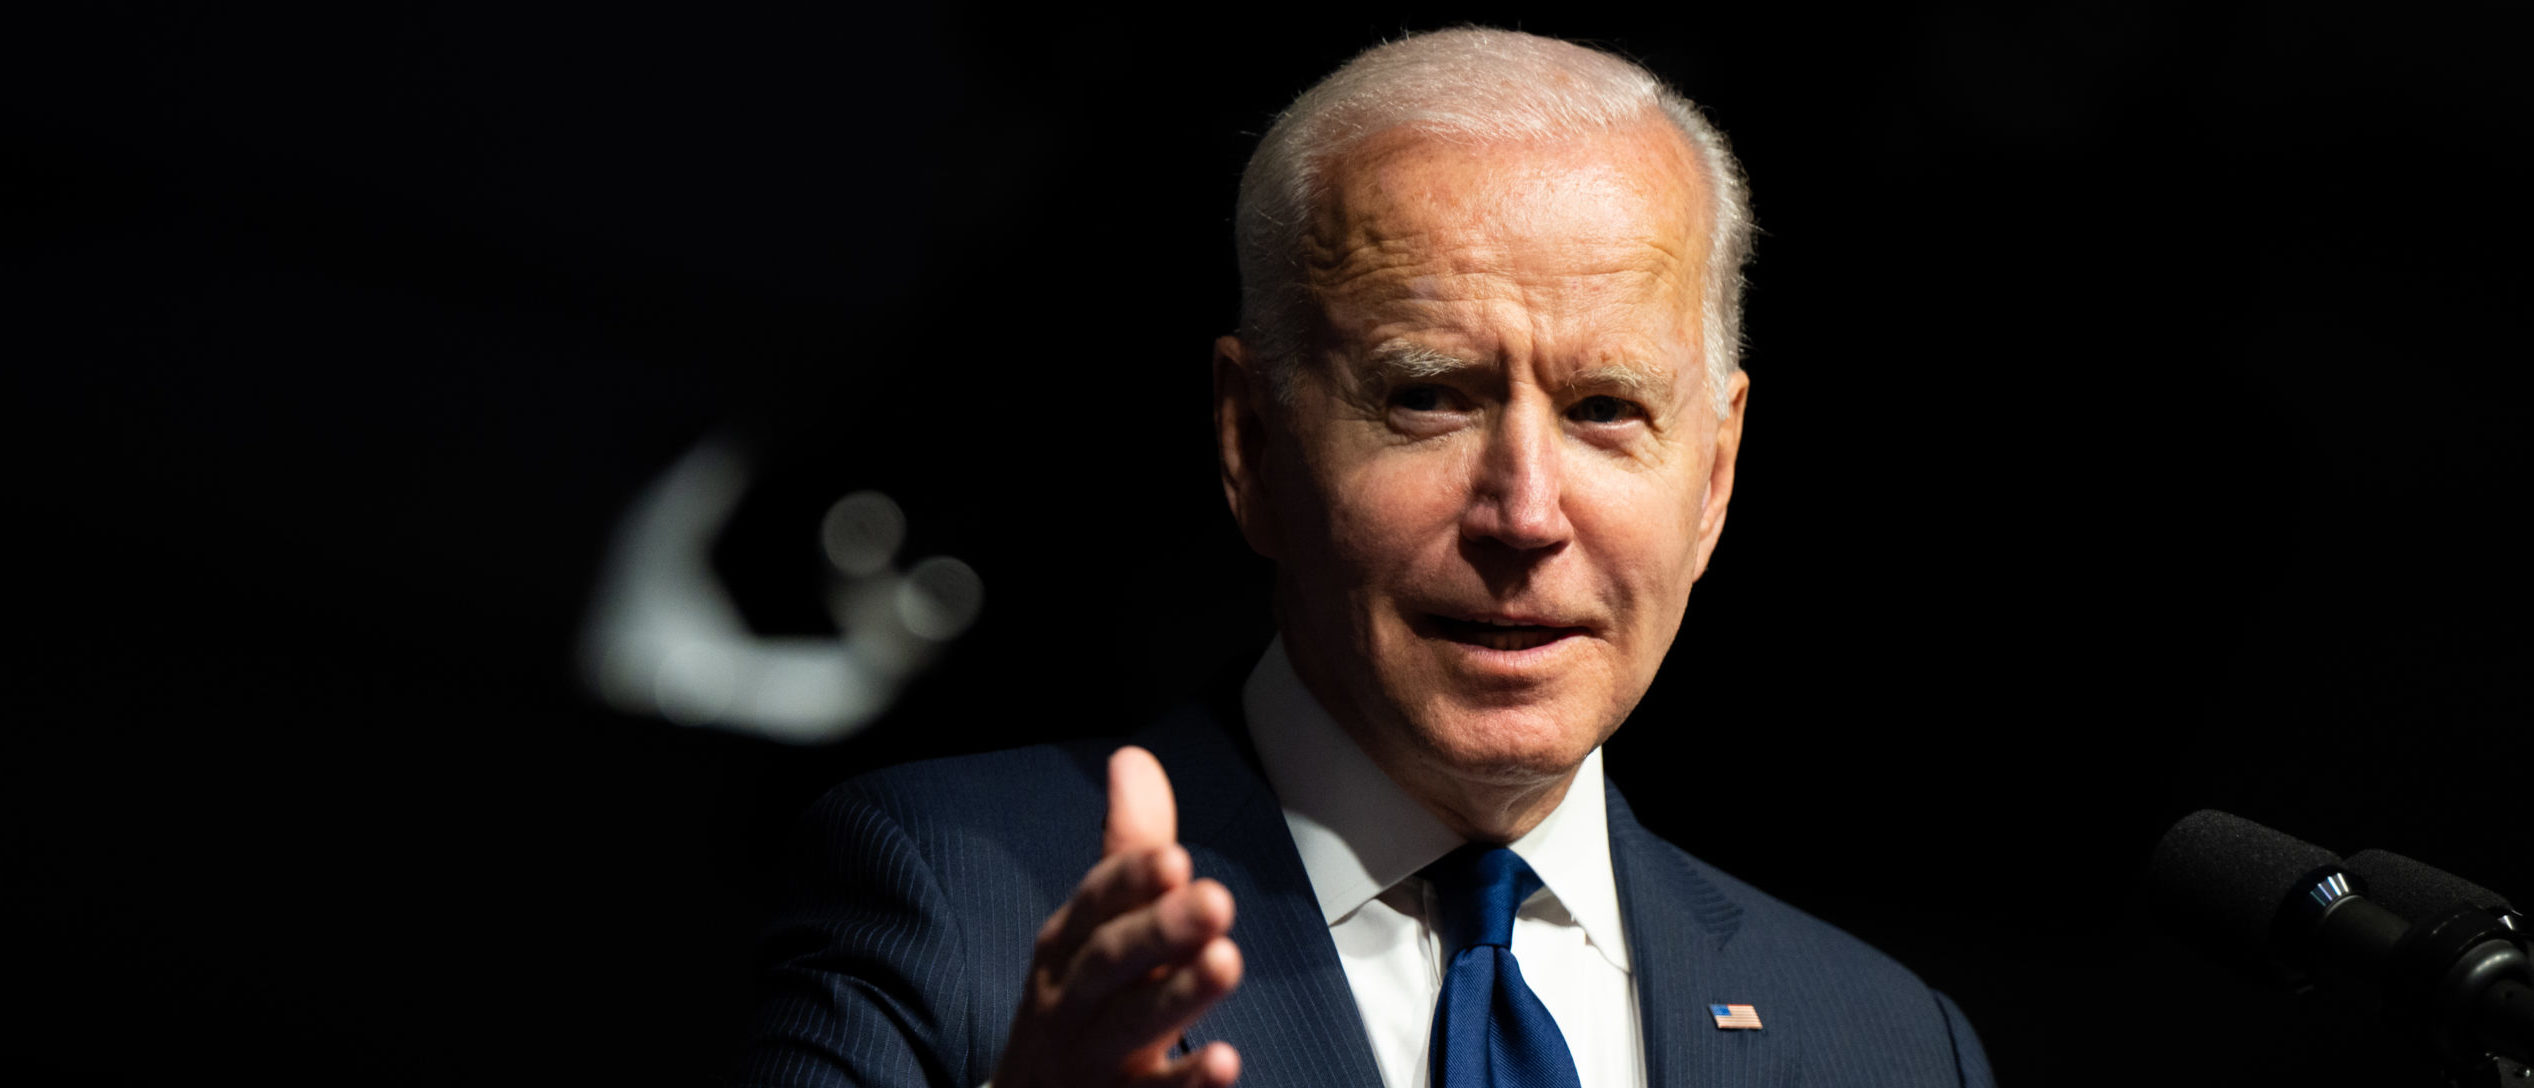 U.S. President Joe Biden speaks at a rally during commemorations of the 100th anniversary of the Tulsa Race Massacre on June 01, 2021 in Tulsa, Oklahoma. (Brandon Bell/Getty Images)